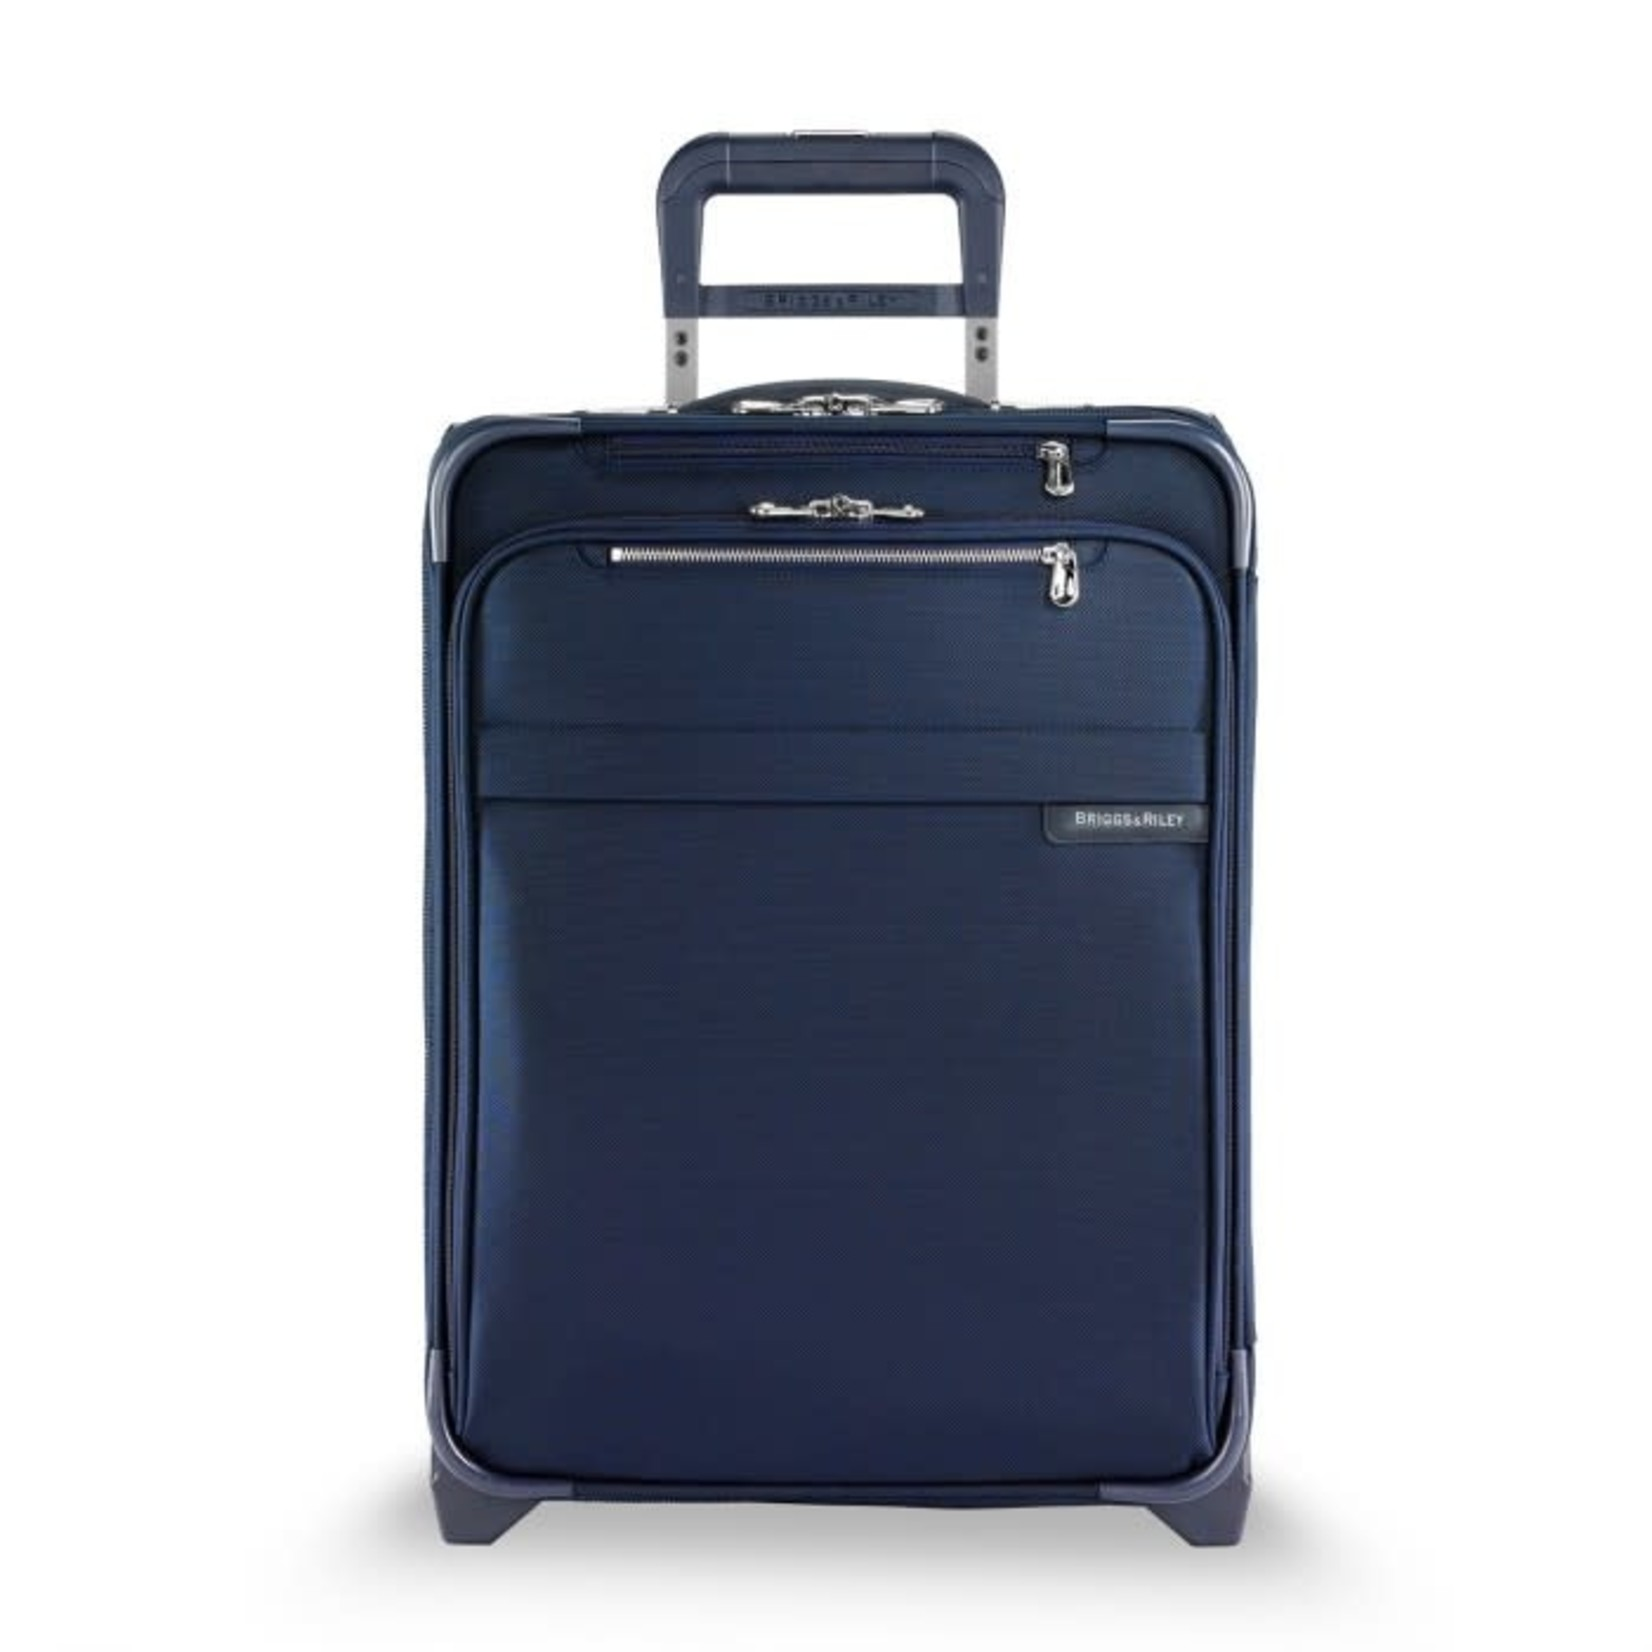 BRIGGS & RILEY BASELINE INTL CARRY-ON EXP WB UPRIGHT Navy